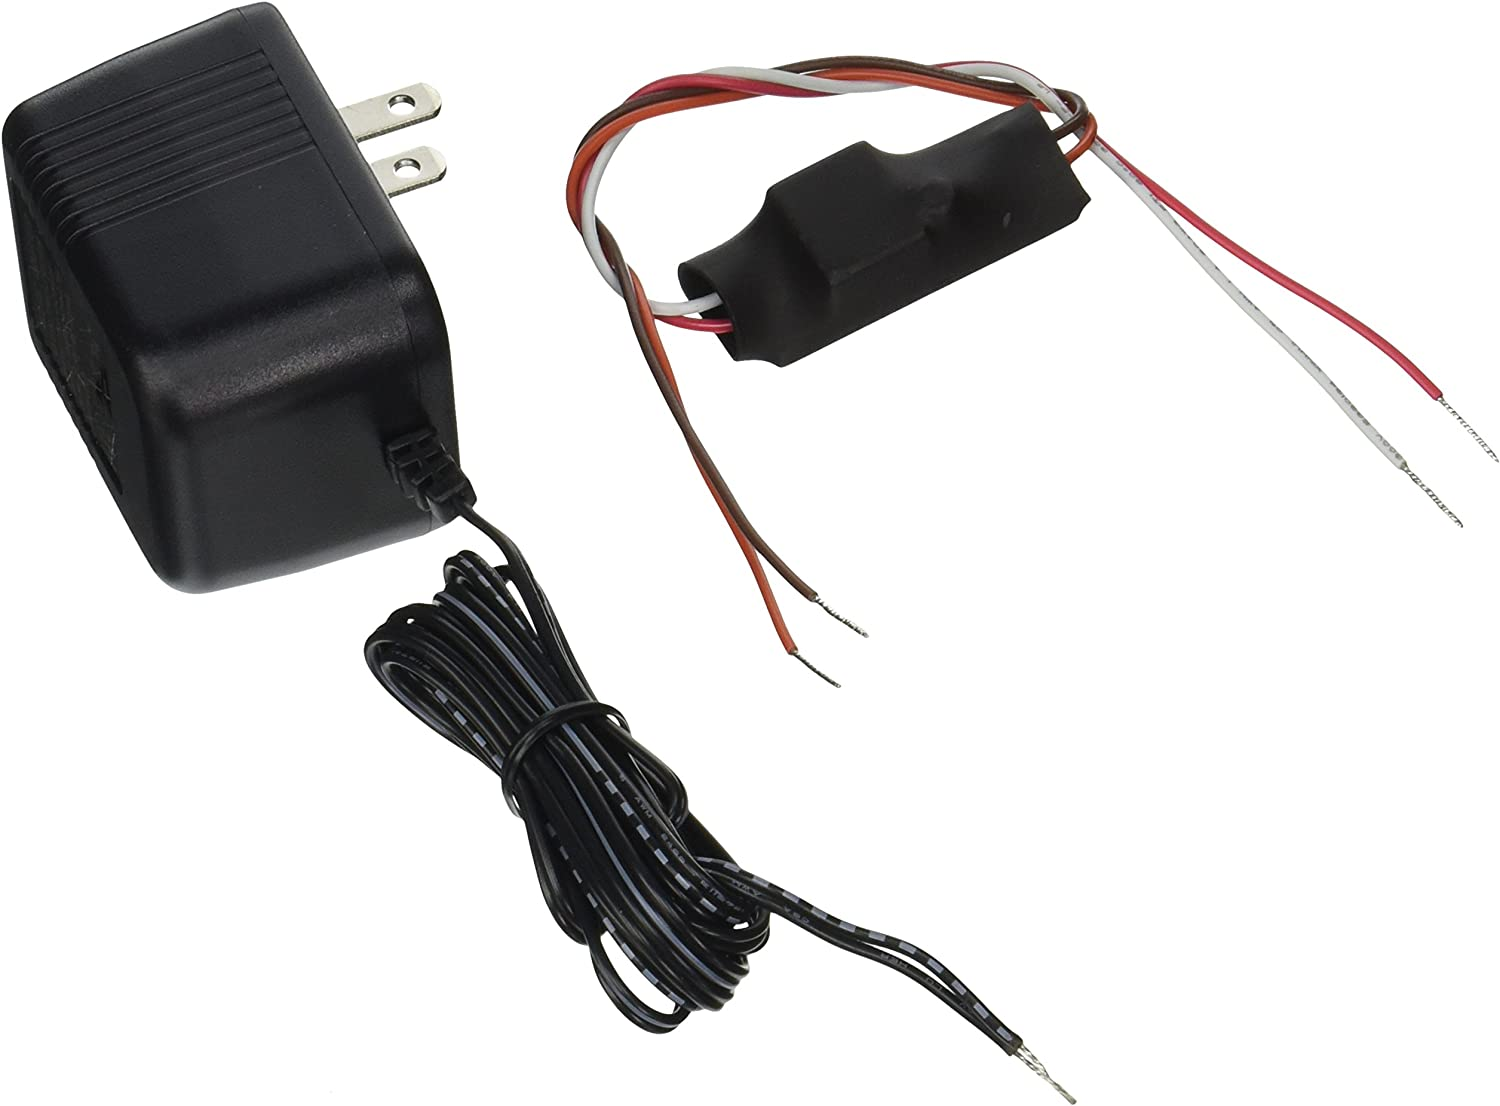 Venstar ACC0436 2-Wire Kit for all 24VAC Thermostats - Programmable  Household Thermostats - Amazon.com | Hvac Thermostat Wiring Hangers |  | Amazon.com